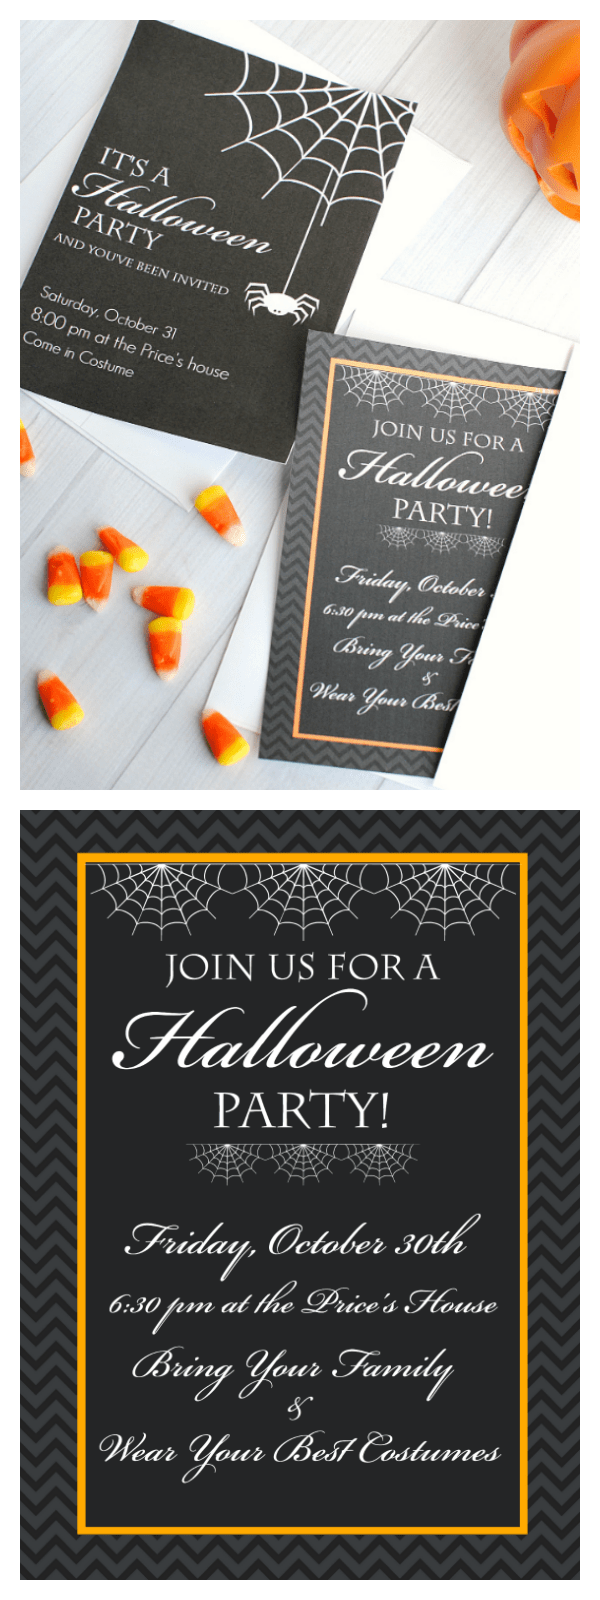 Free Printable Halloween Invitations for your next Halloween party! 4 cute versions to choose from! #Halloween #Halloweenparty #invitations